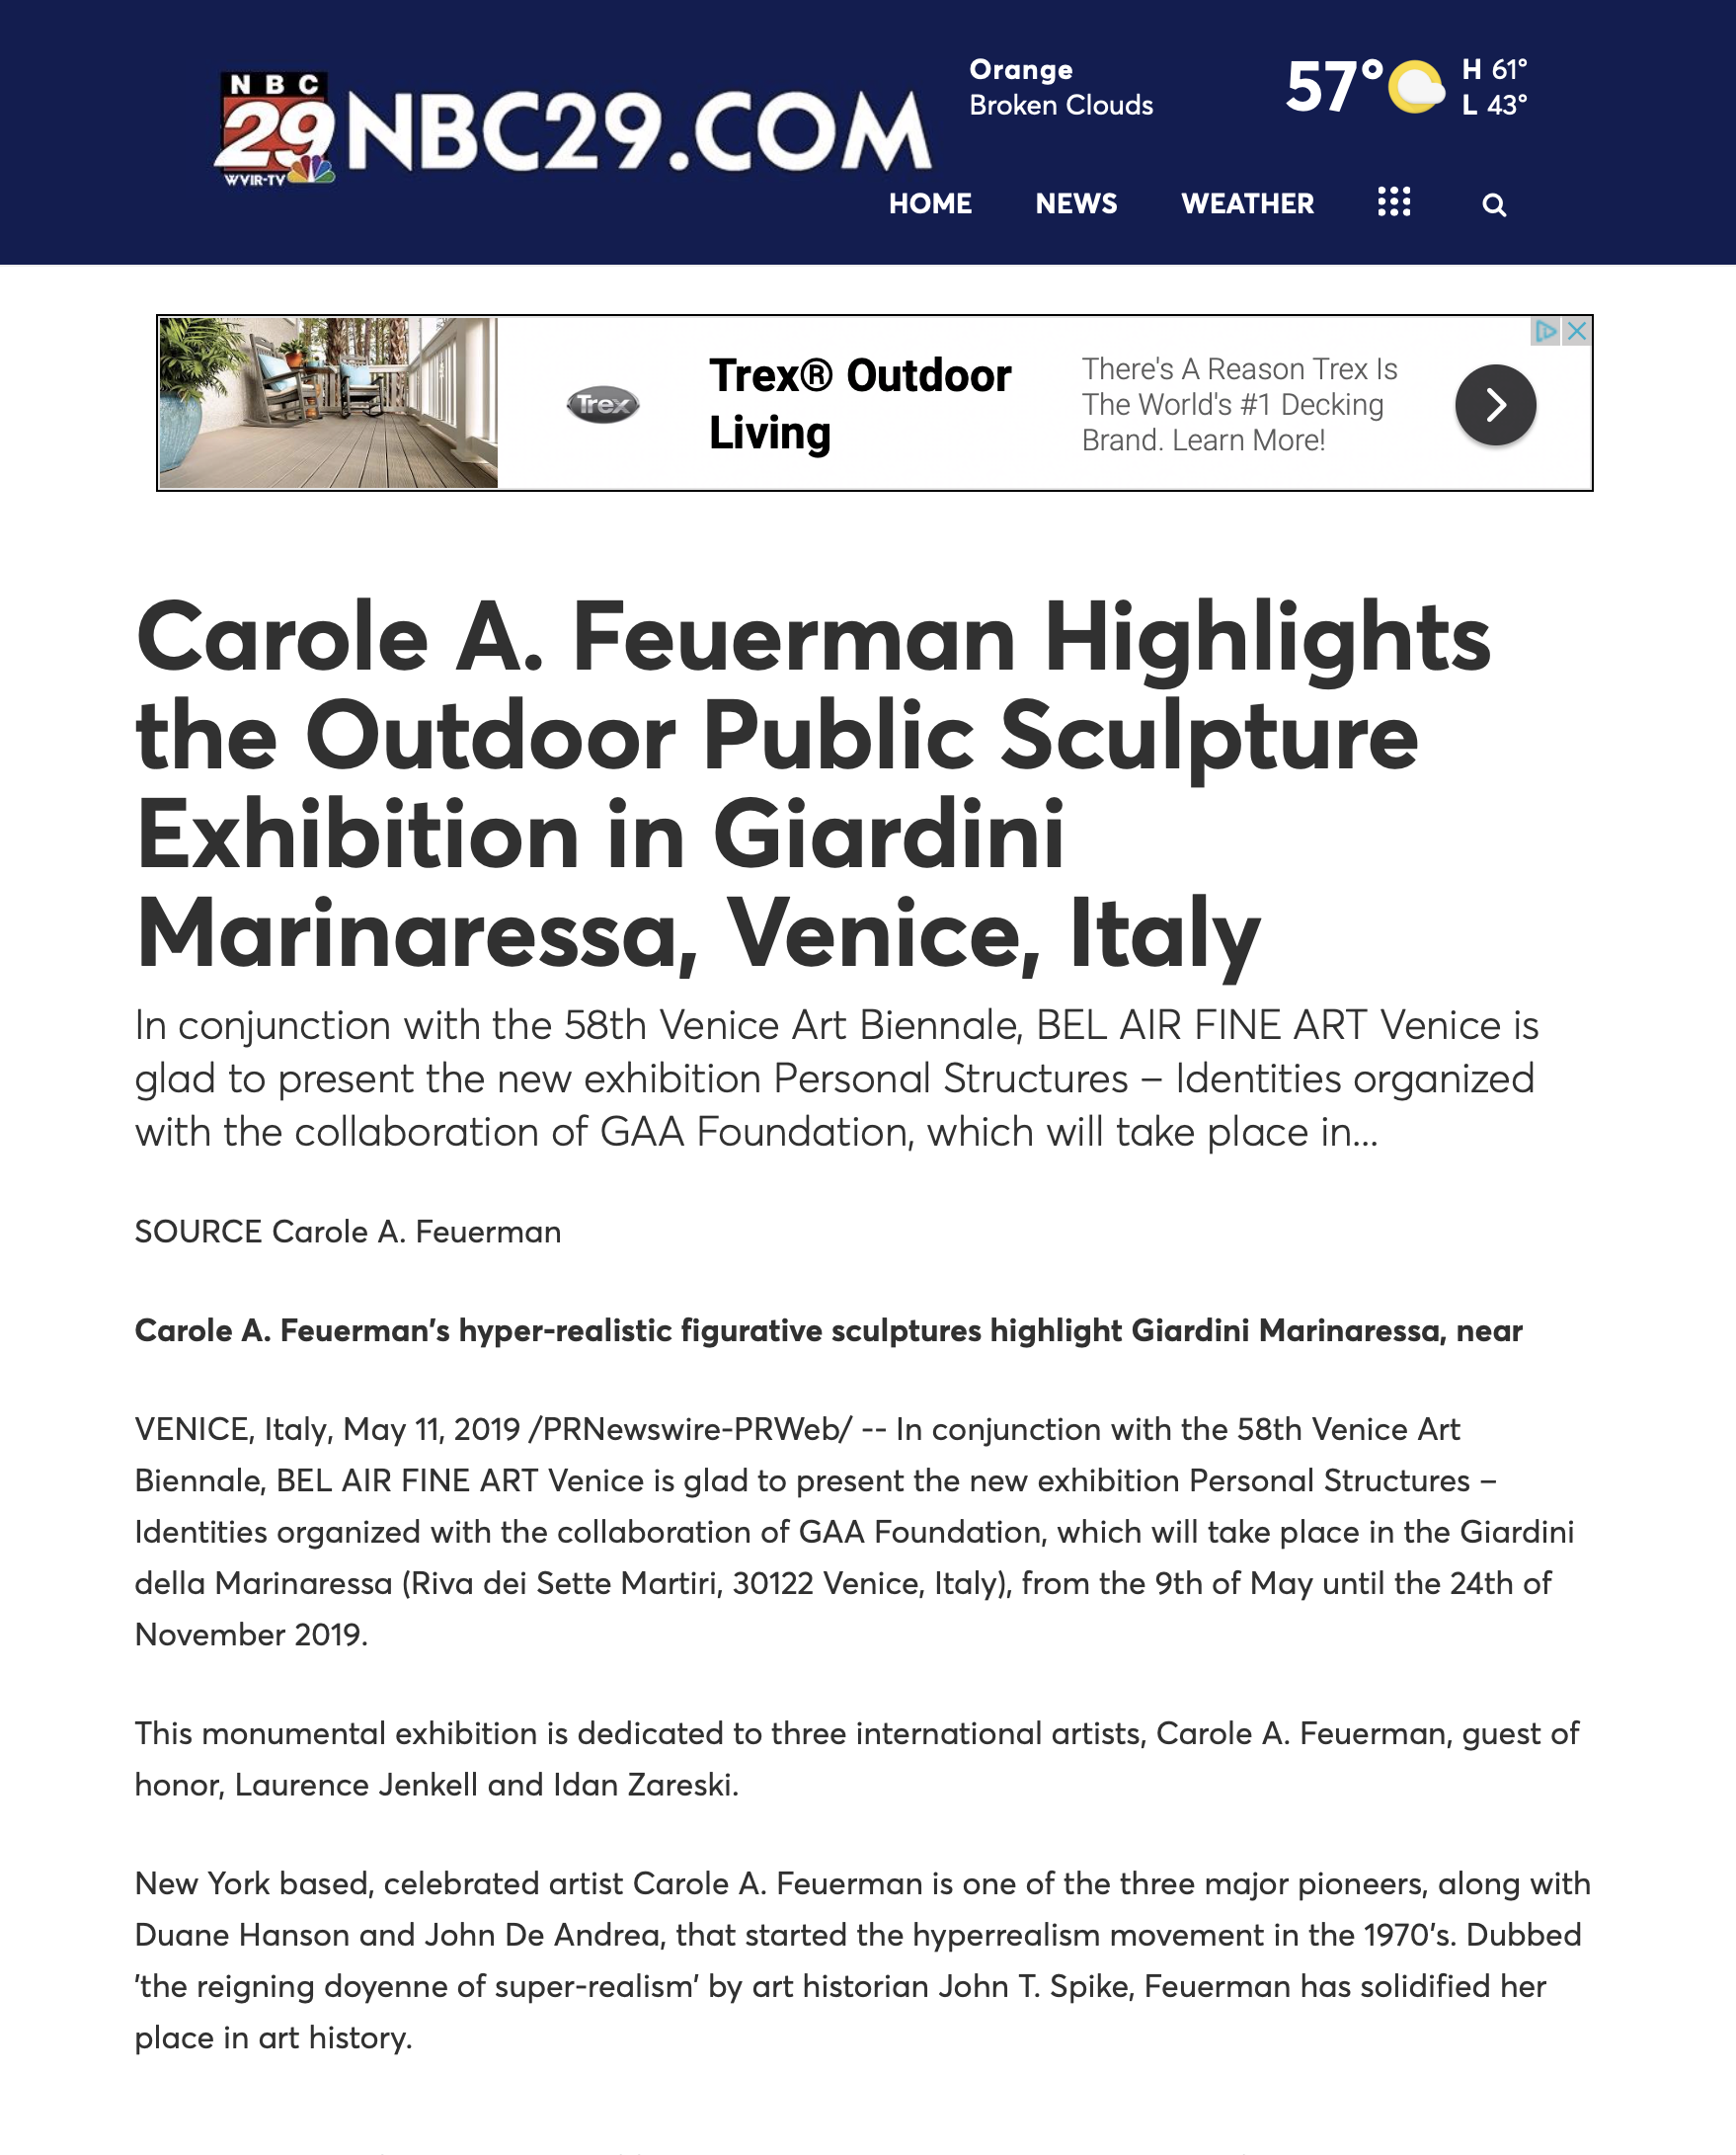 Carole A. Feuerman Highlights the Outdoor Public Sculpture Exhibition in Giardini Marinaressa, Venice, Italy